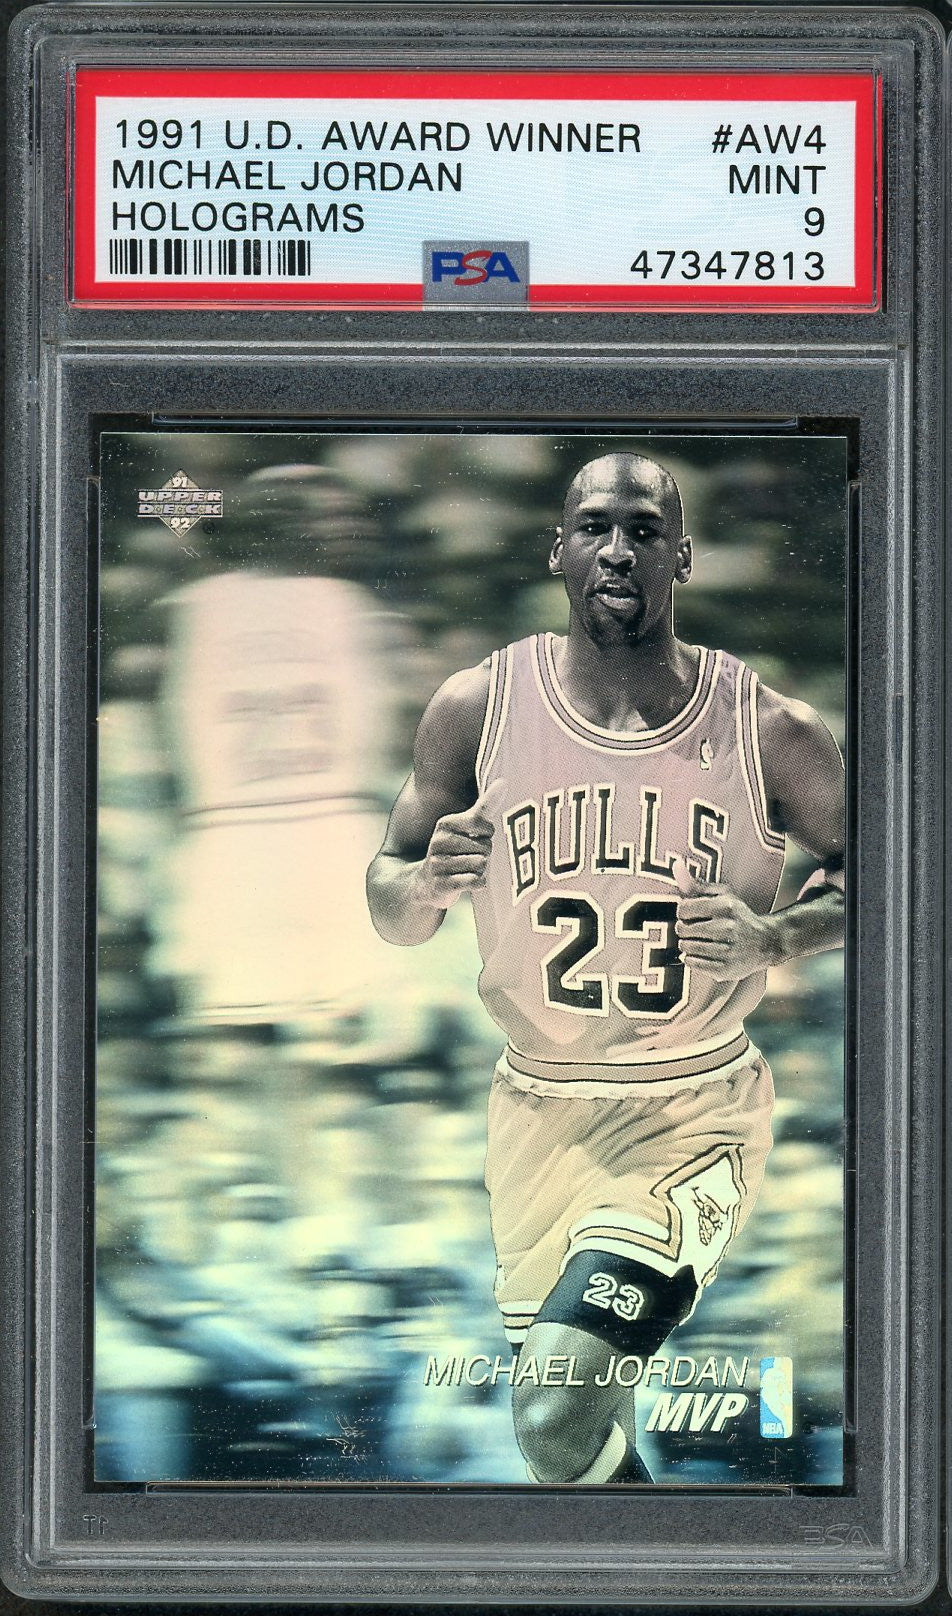 Michael Jordan Chicago Bulls 1991 Upper Deck MVP Award Winner Holograms Basketball Card #AW4 PSA 9 MINT-Powers Sports Memorabilia